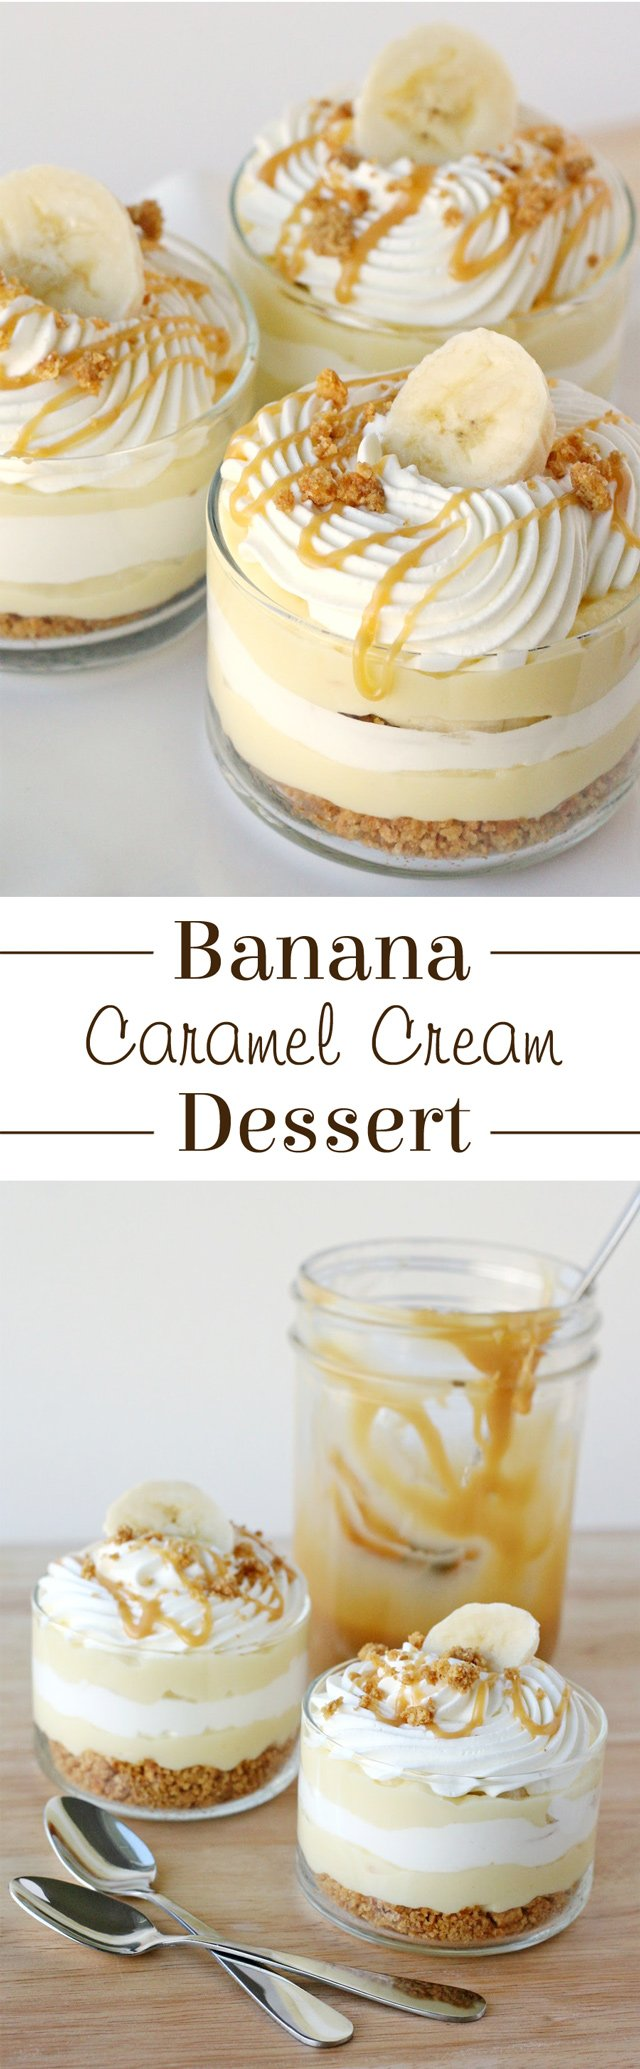 The most AMAZING dessert ever!  Sweet, creamy, crunchy... this Banana Caramel Cream Dessert has it all!